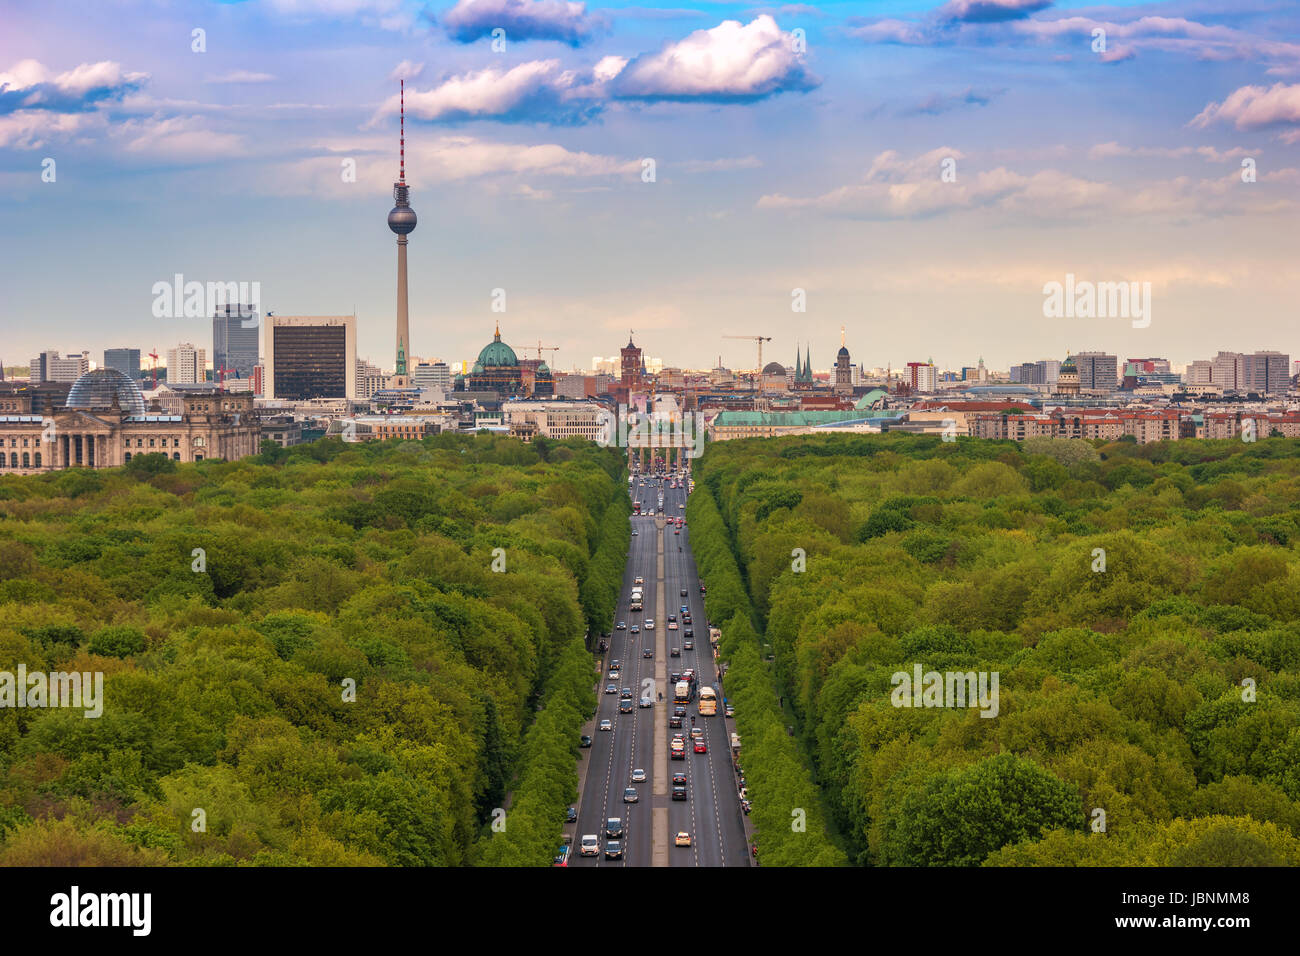 Berlin city skyline and Tiergarten, Berlin, Germany - Stock Image